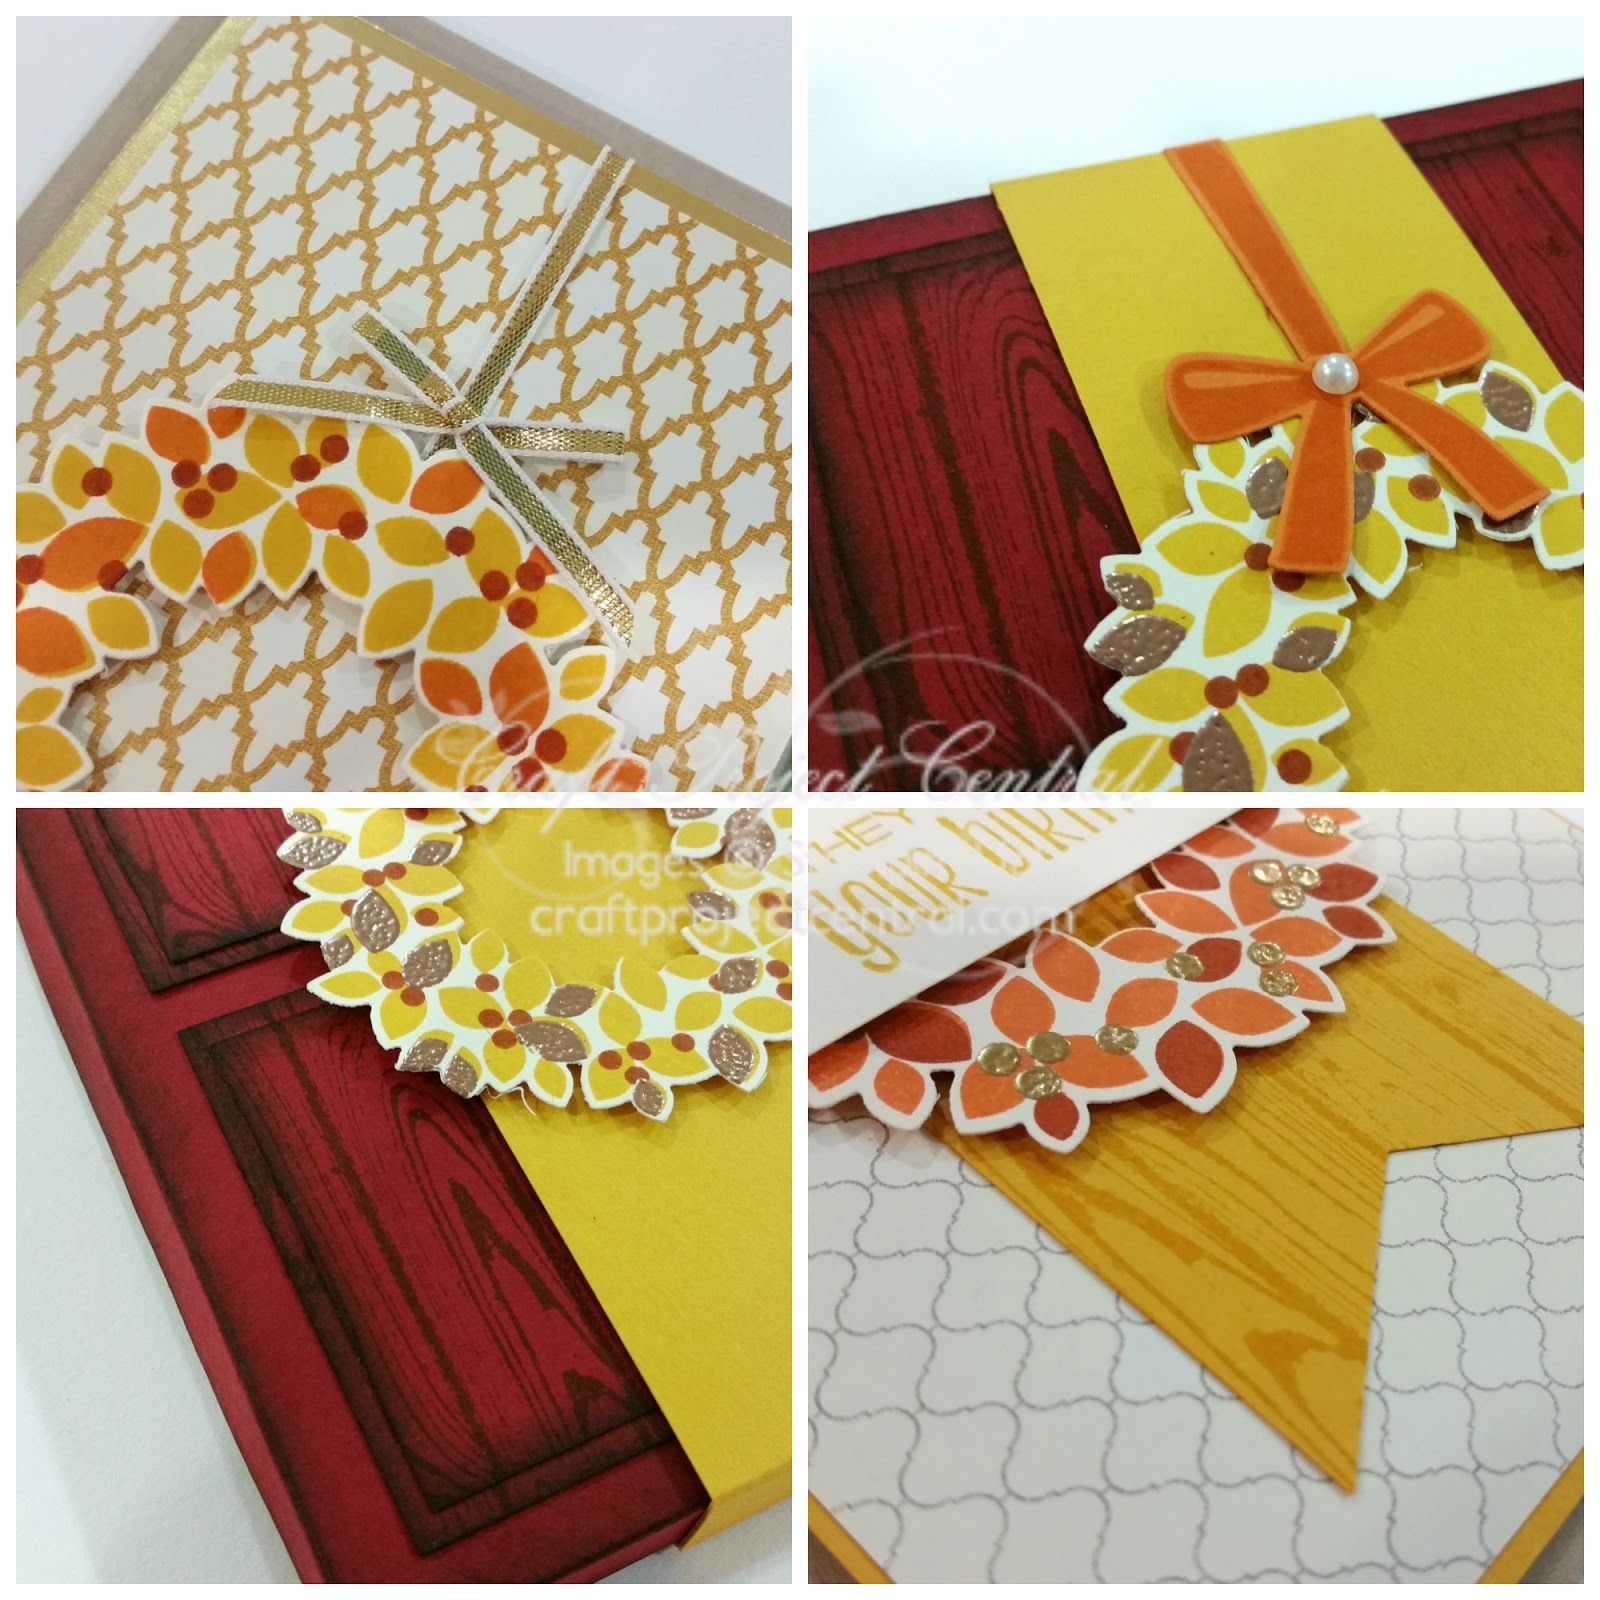 Krafting kreations autumn wreath greeting card box set this would make a quick and easy class project or hostess gift make one to gift to a friend or keep it just for yourself kristyandbryce Gallery